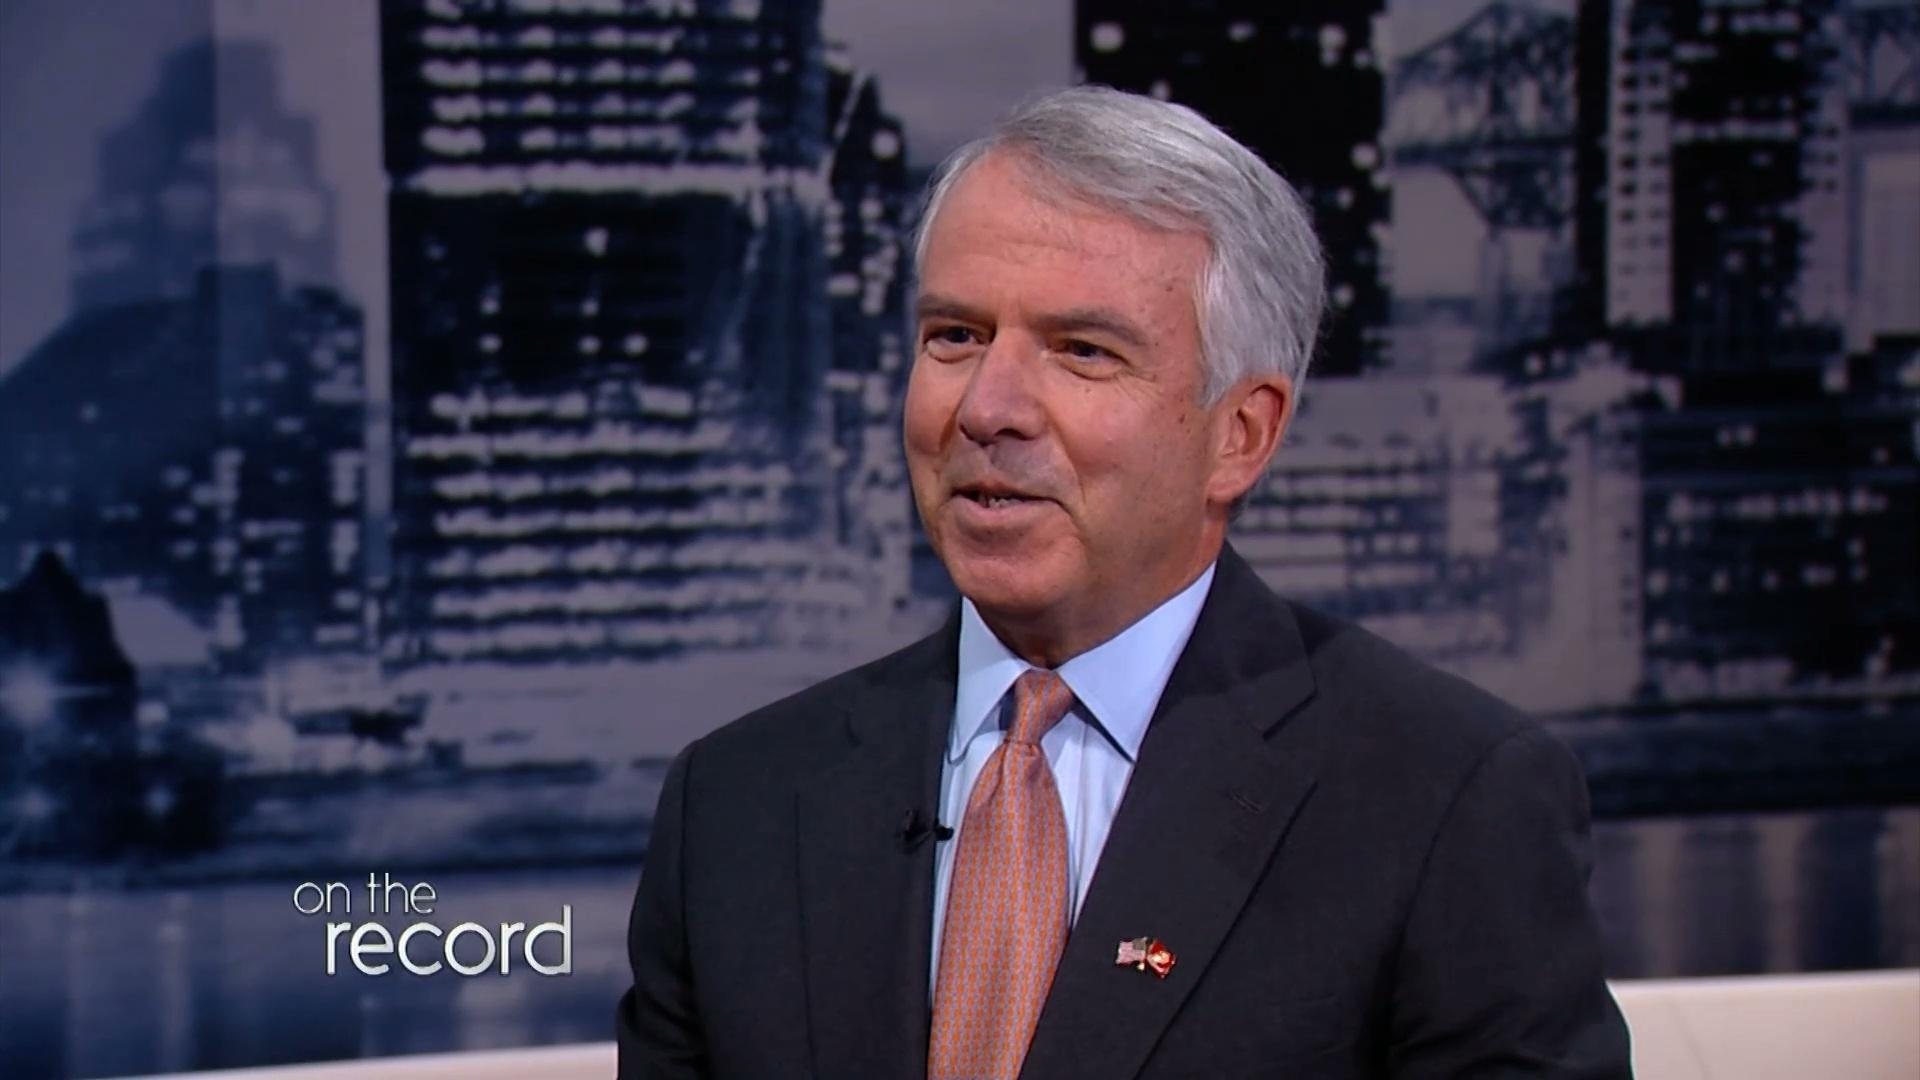 Former Celgene CEO Bob Hugin won the US Senate endorsement of the Ocean County Republican Party tonight in Toms River defeating the Ocean GOPs 2014